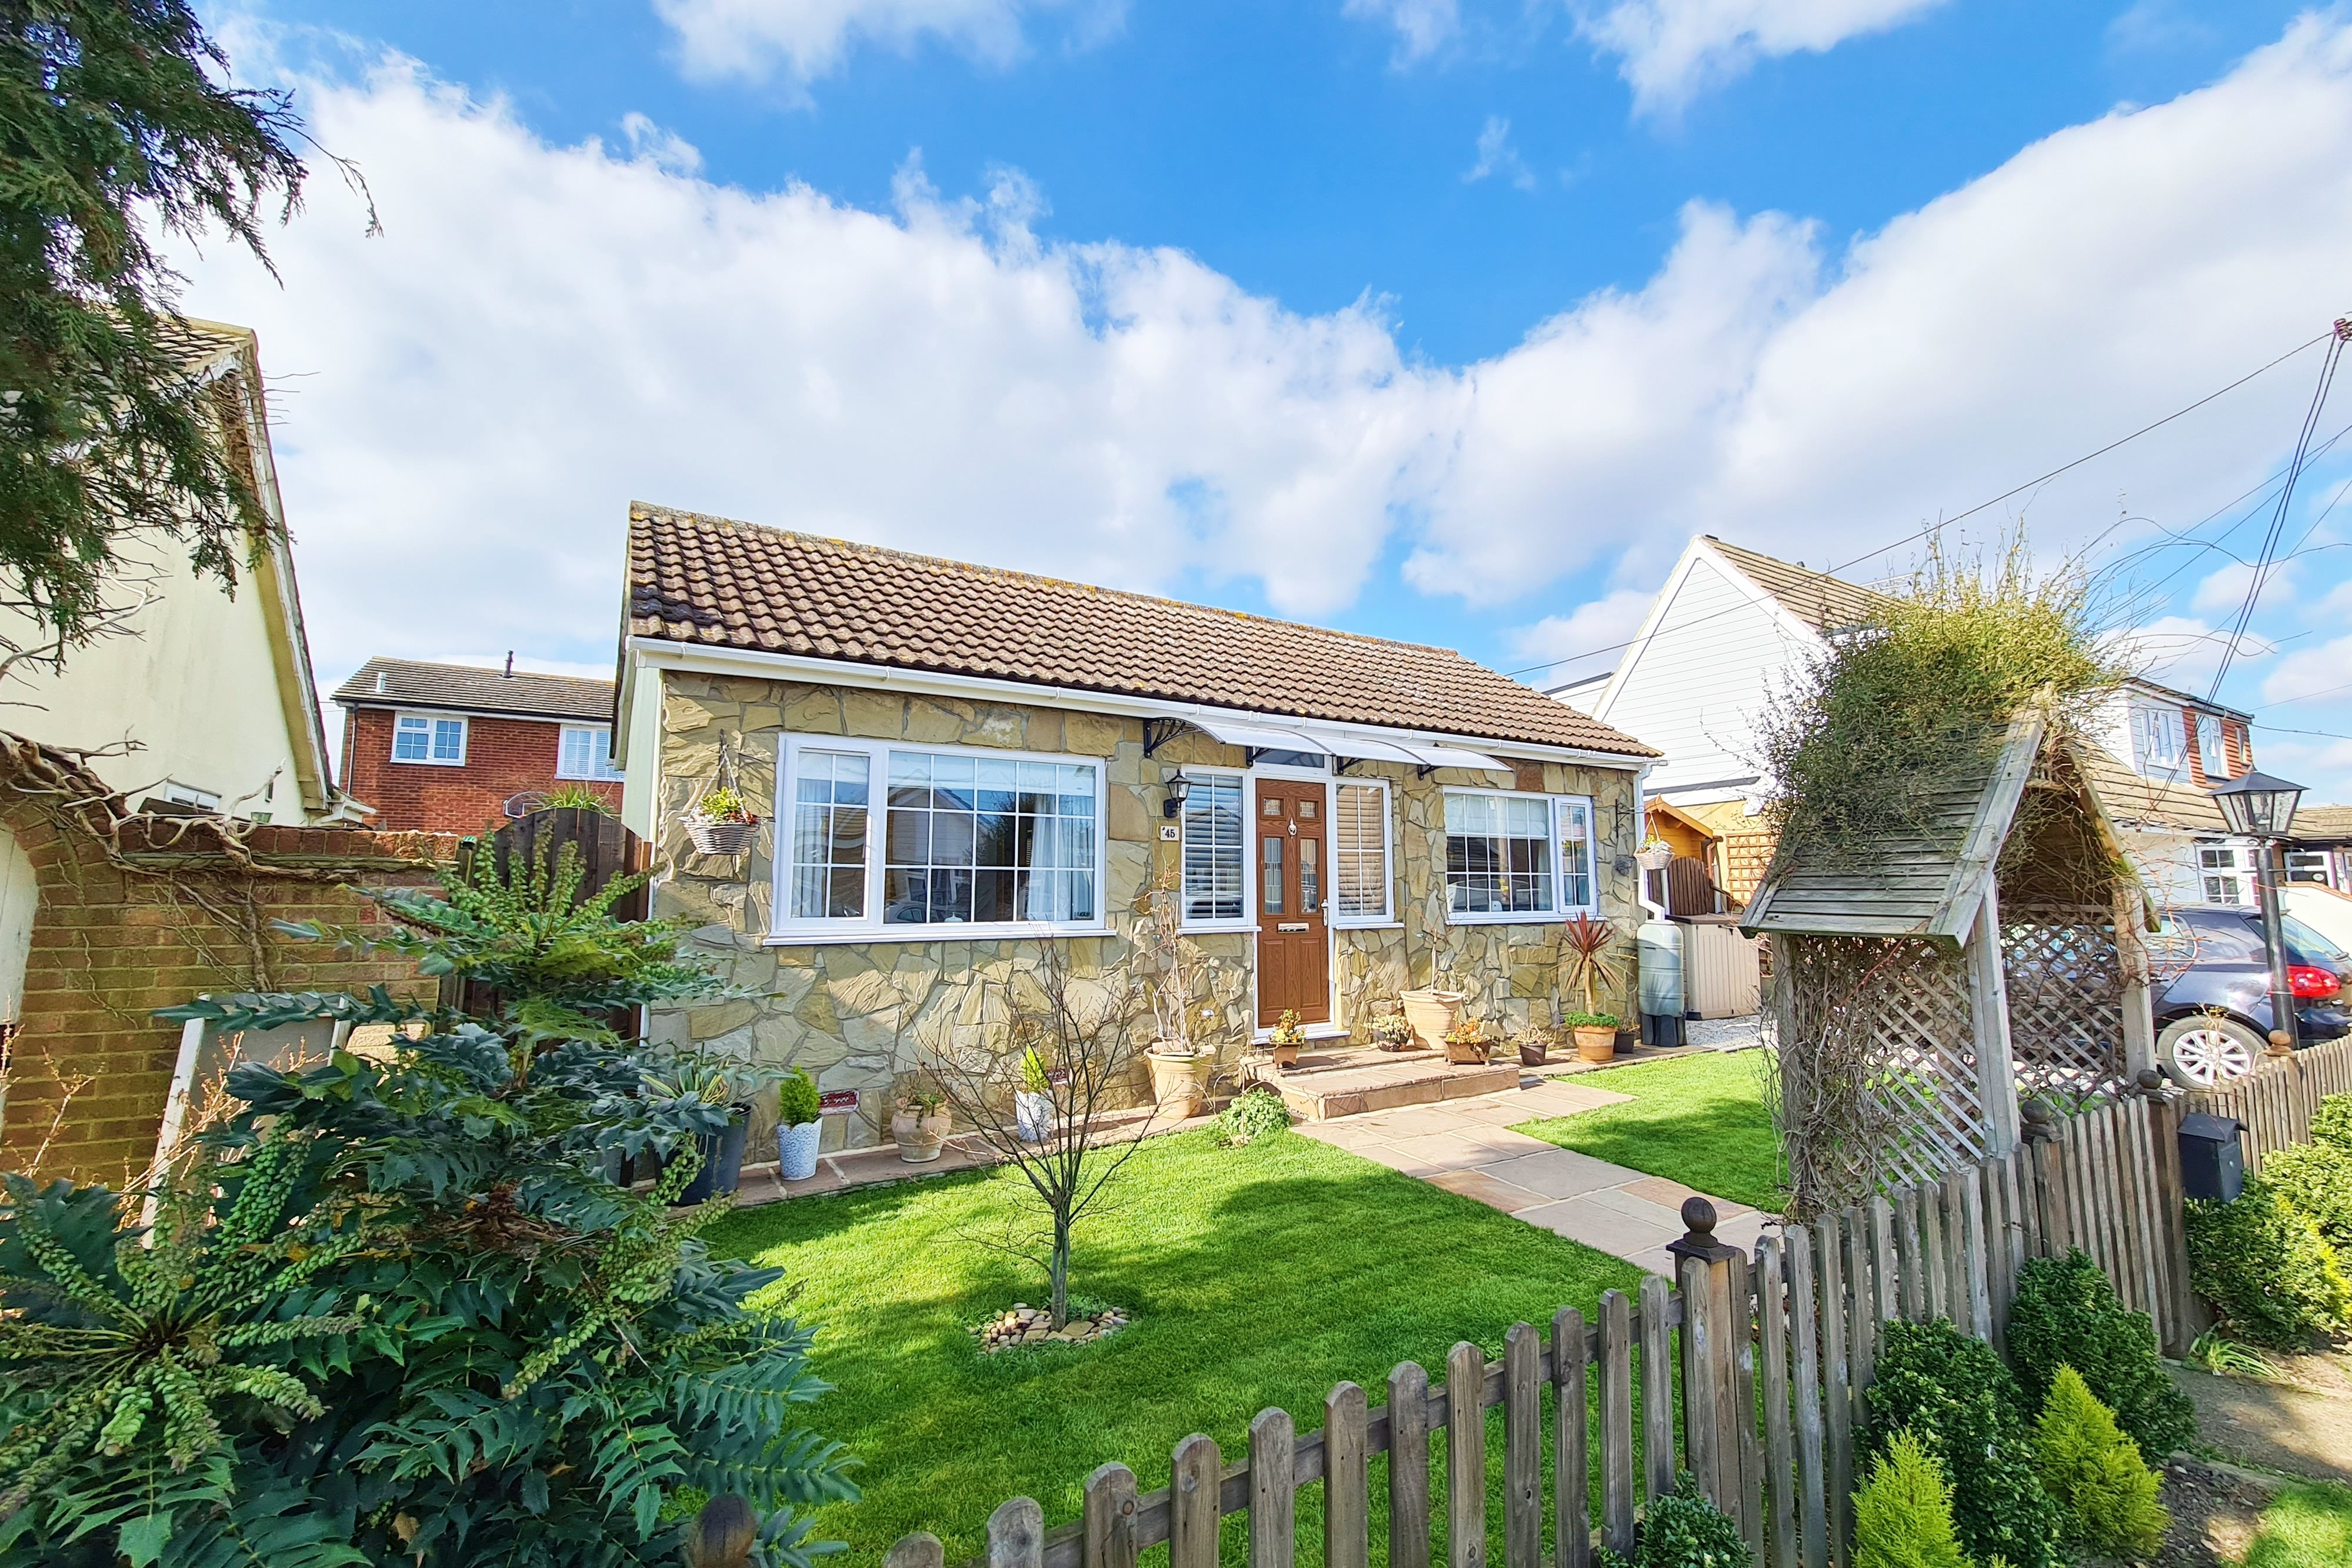 2 bed bungalow for sale in Canvey Island, Essex, SS8